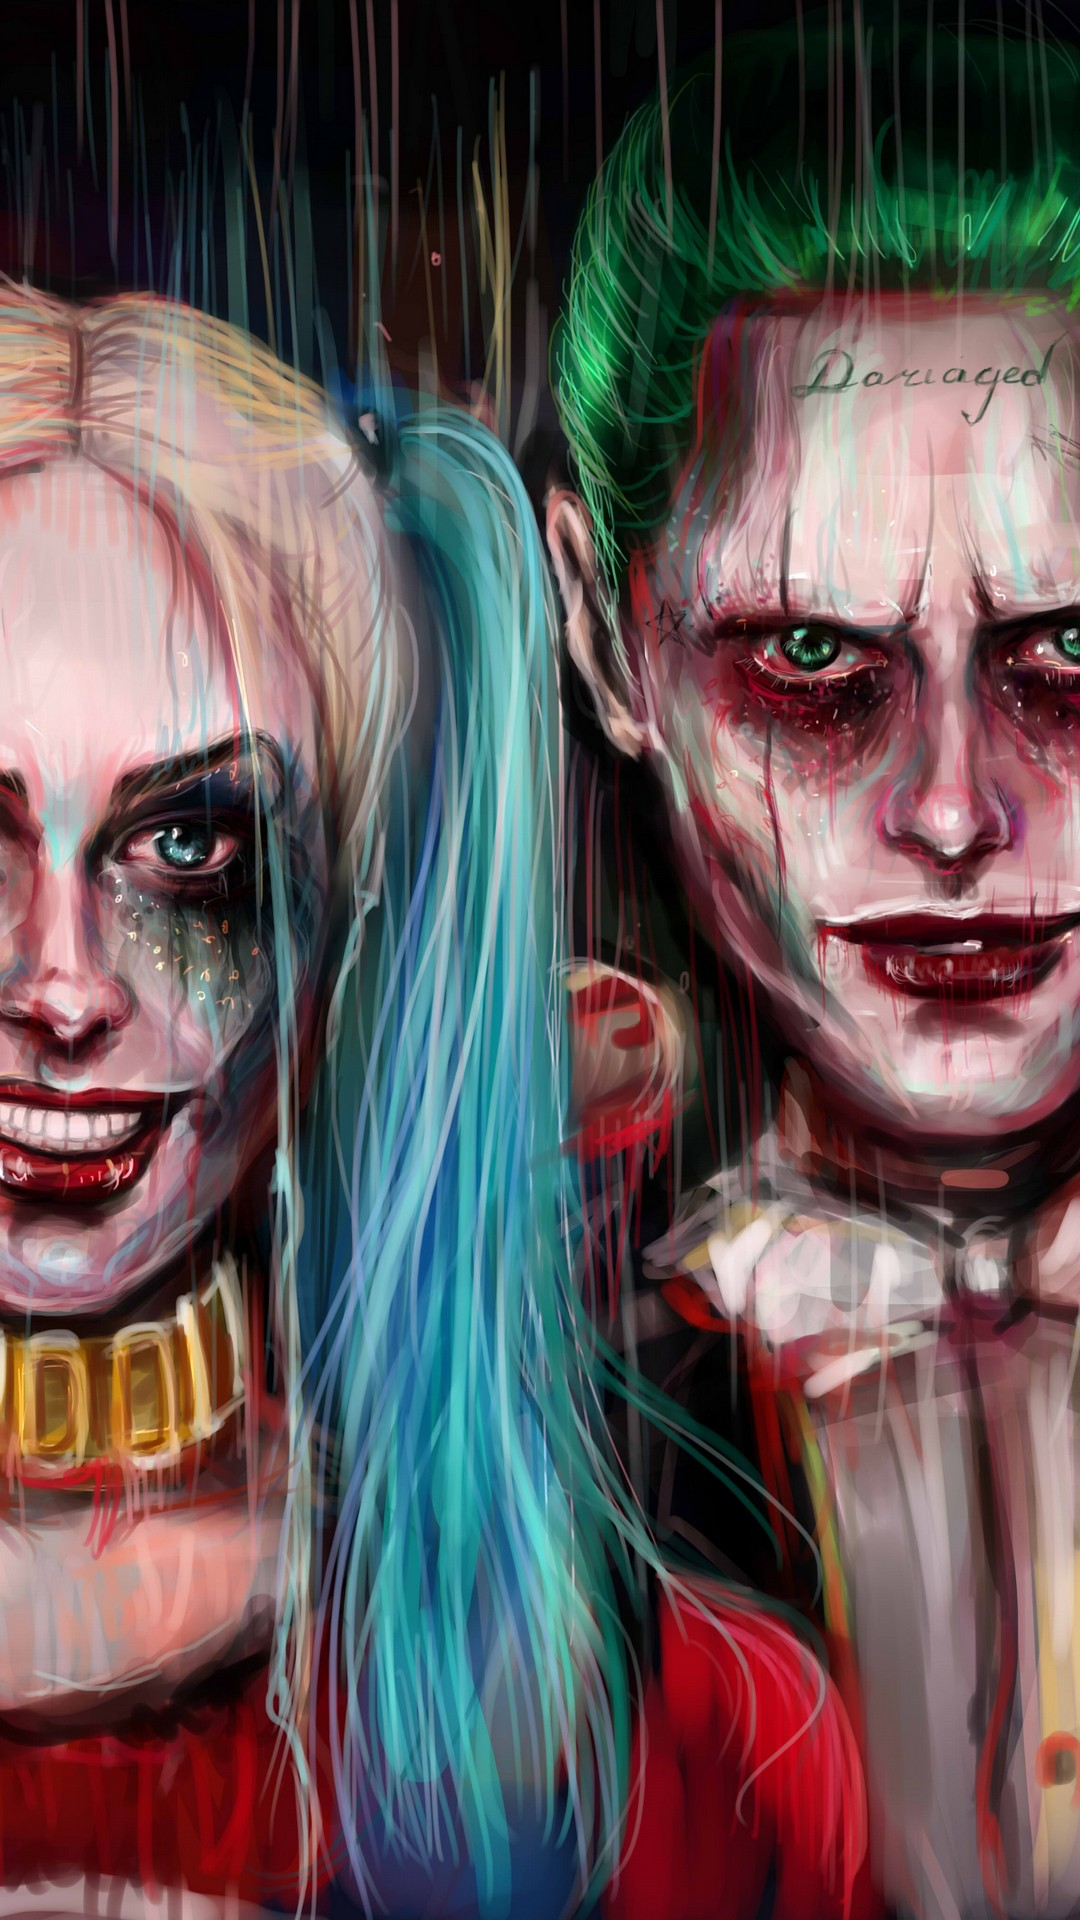 Harley Quinn Wallpaper 1080x1920 Download Hd Wallpaper Wallpapertip